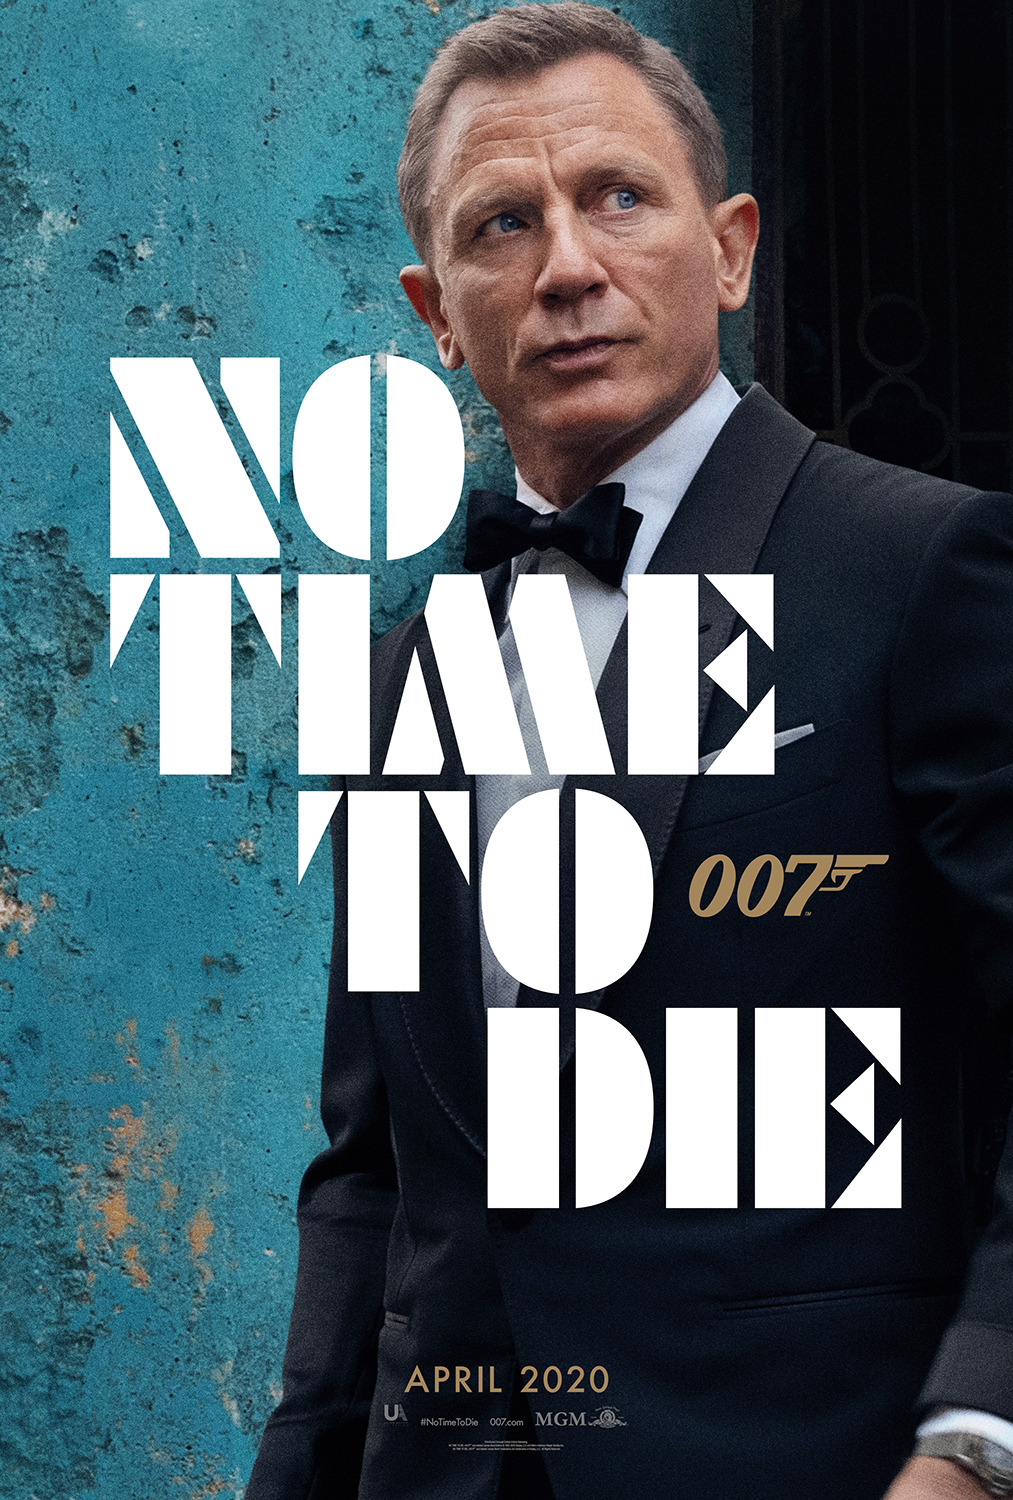 NO TIME TO DIE POSTER (#12 OF 12) - OKAY BHARGAV